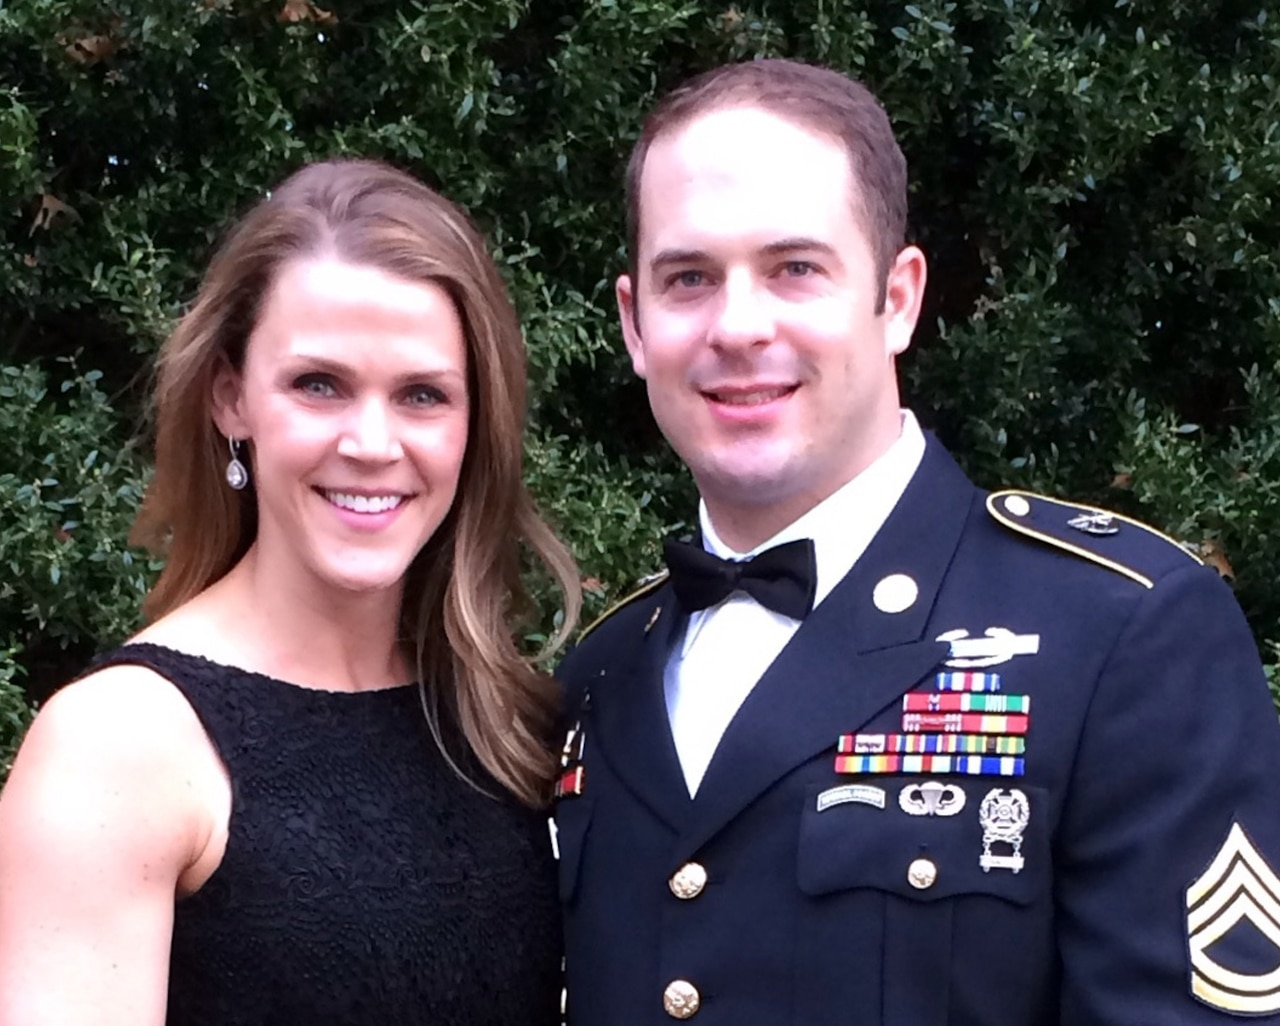 A woman poses with a soldier wearing his dress uniform and bowtie.